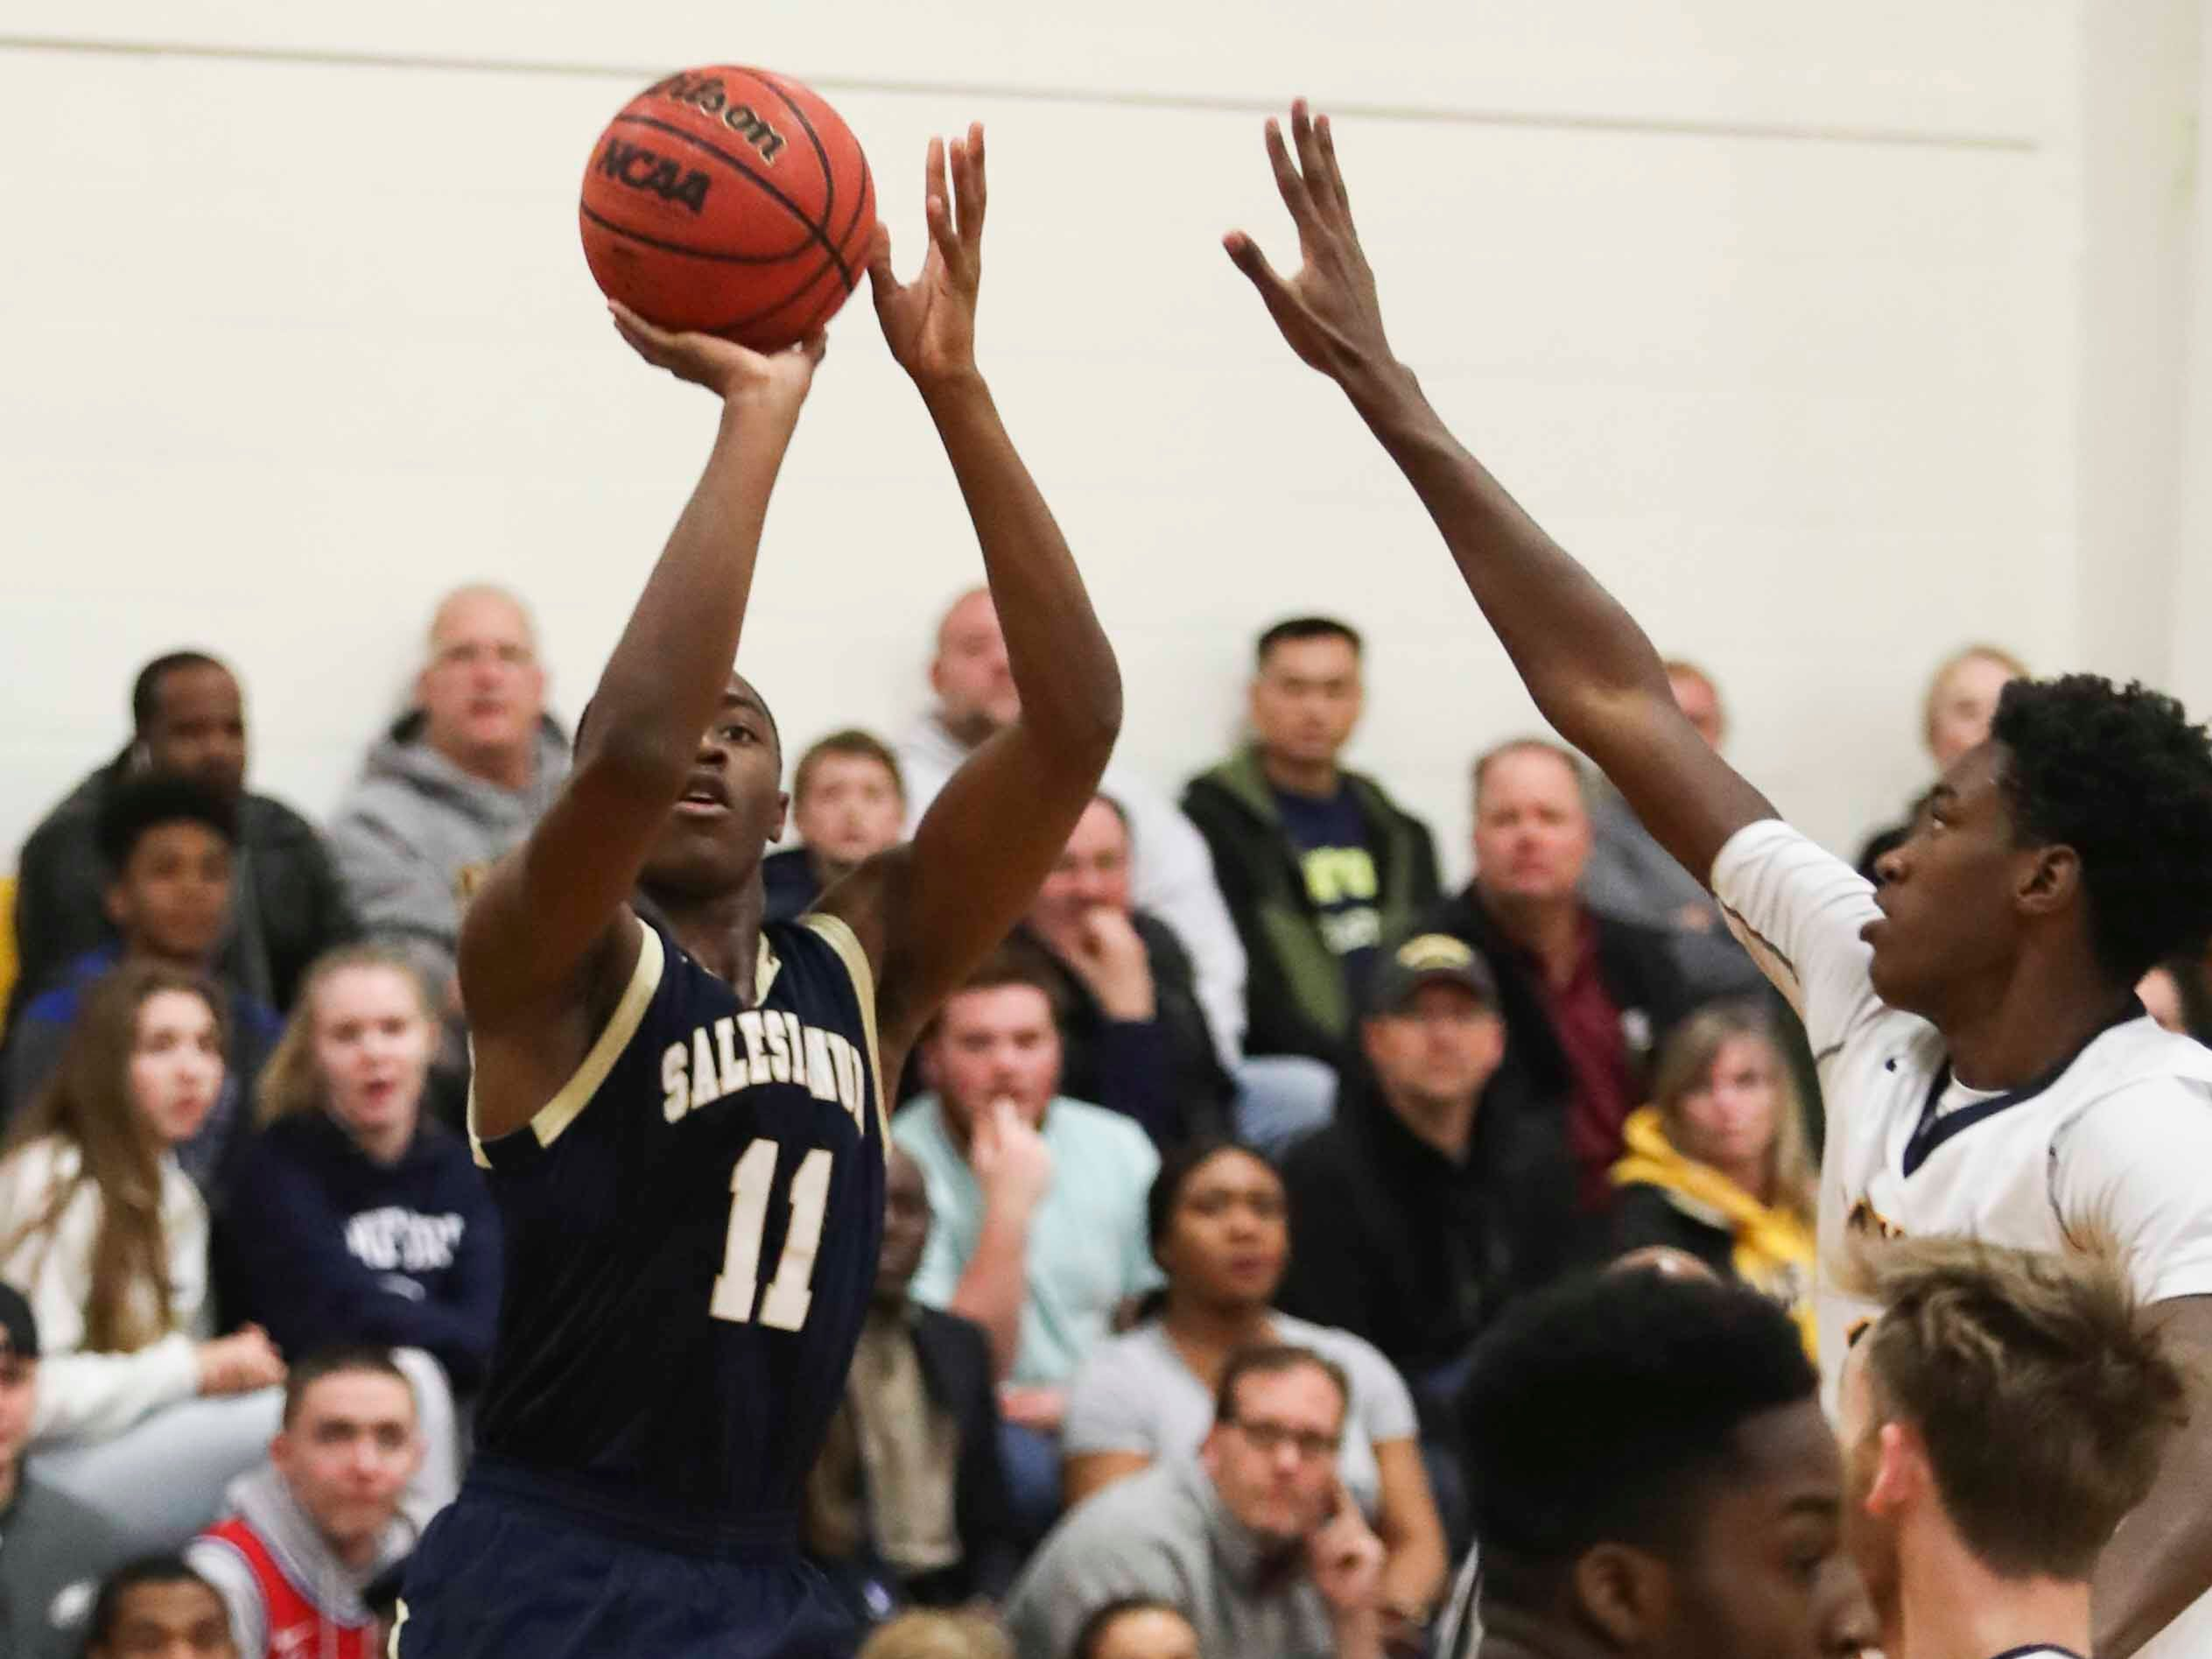 Salesianum's Darnell Vaughan shoots against Sanford's Devin Harris during the Warriors' 65-47 win at home Friday.